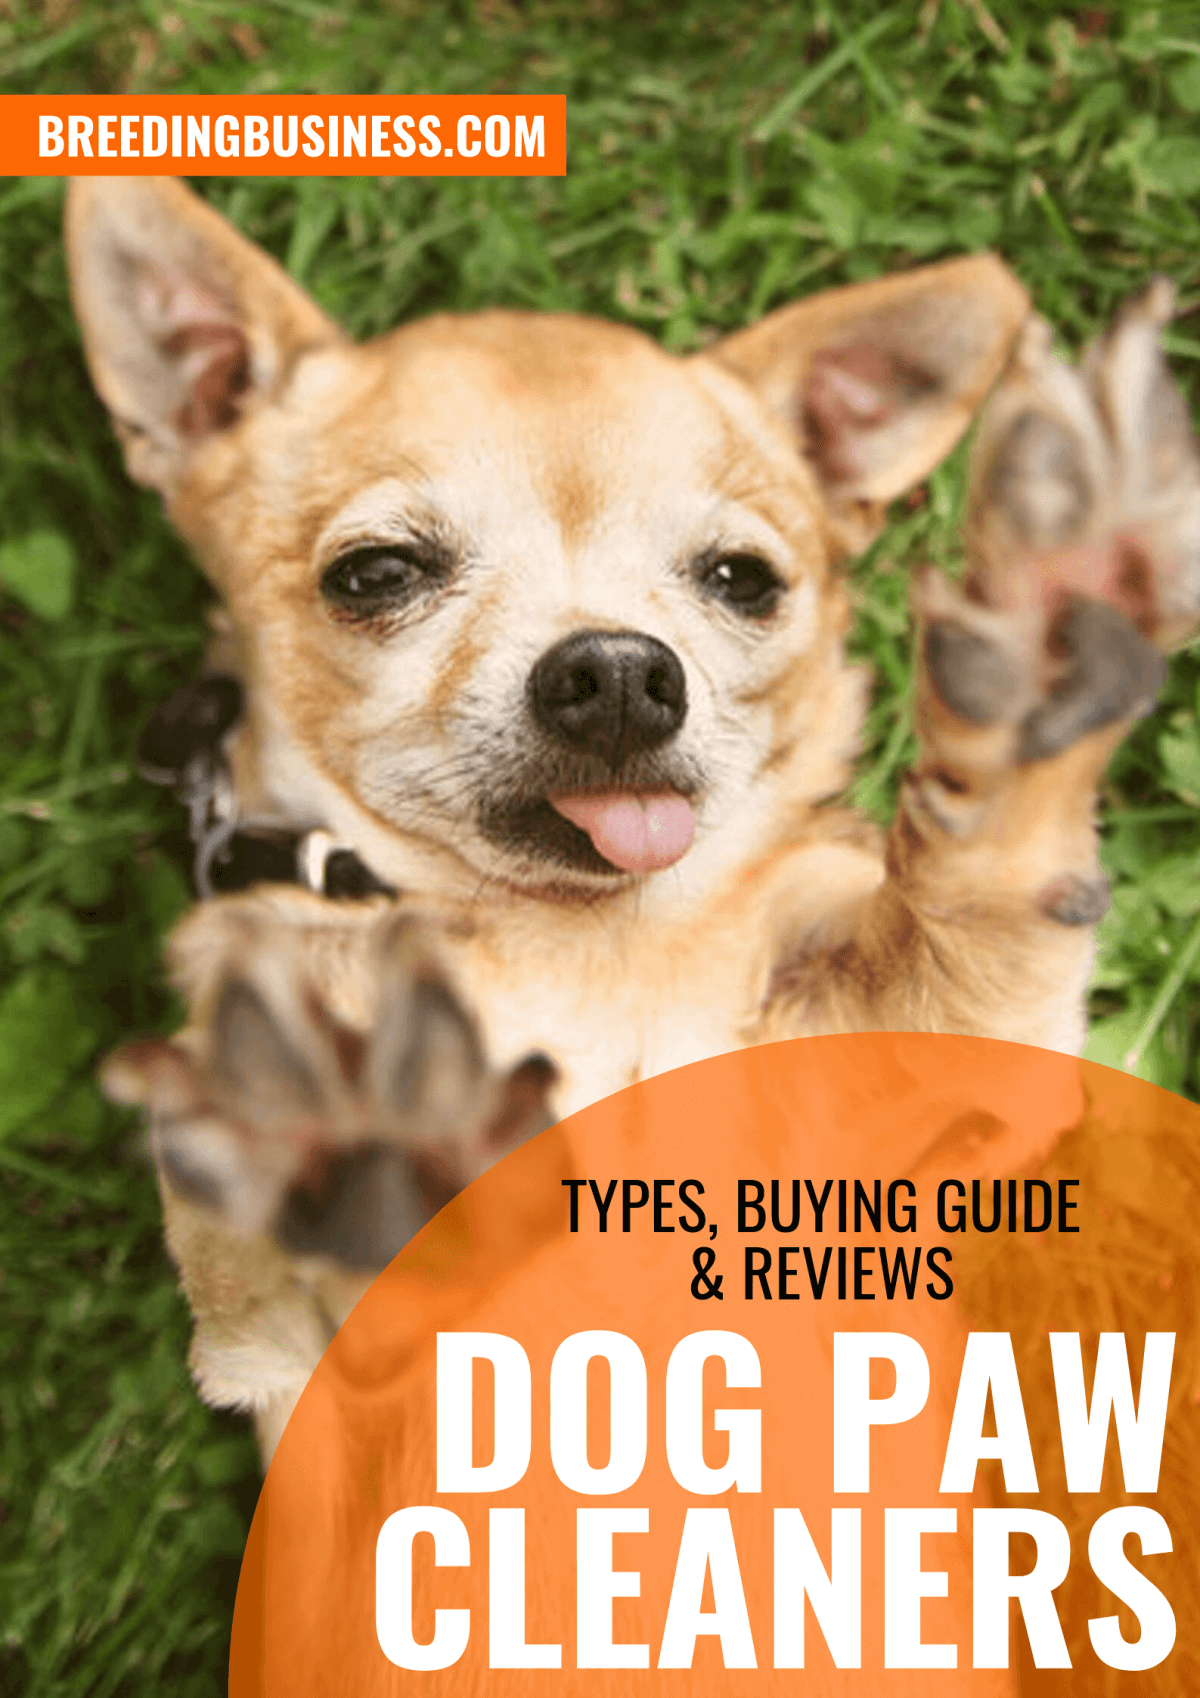 Dog Paw Cleaners – Types, Buying Guide & Reviews